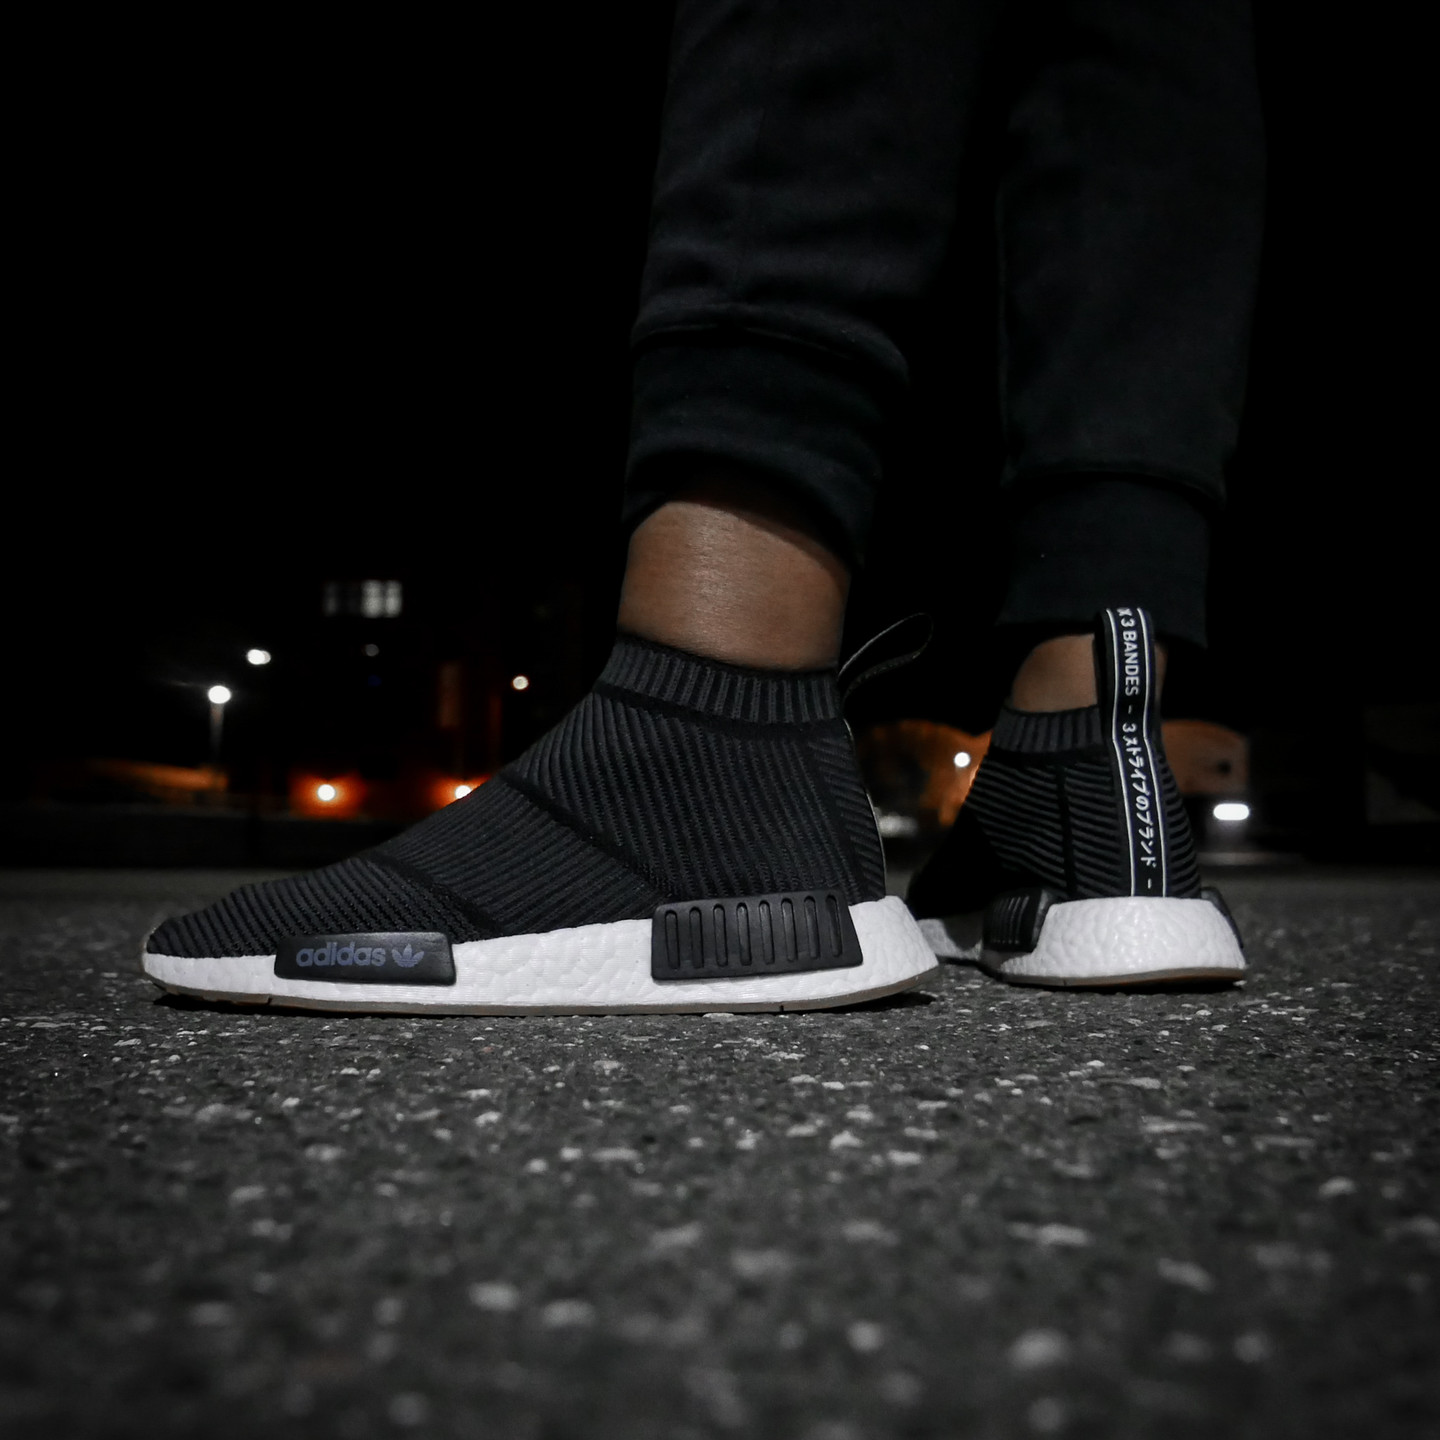 Adidas NMD CS1 City Sock Boost Primeknit Core Black / Gum BA7209-44